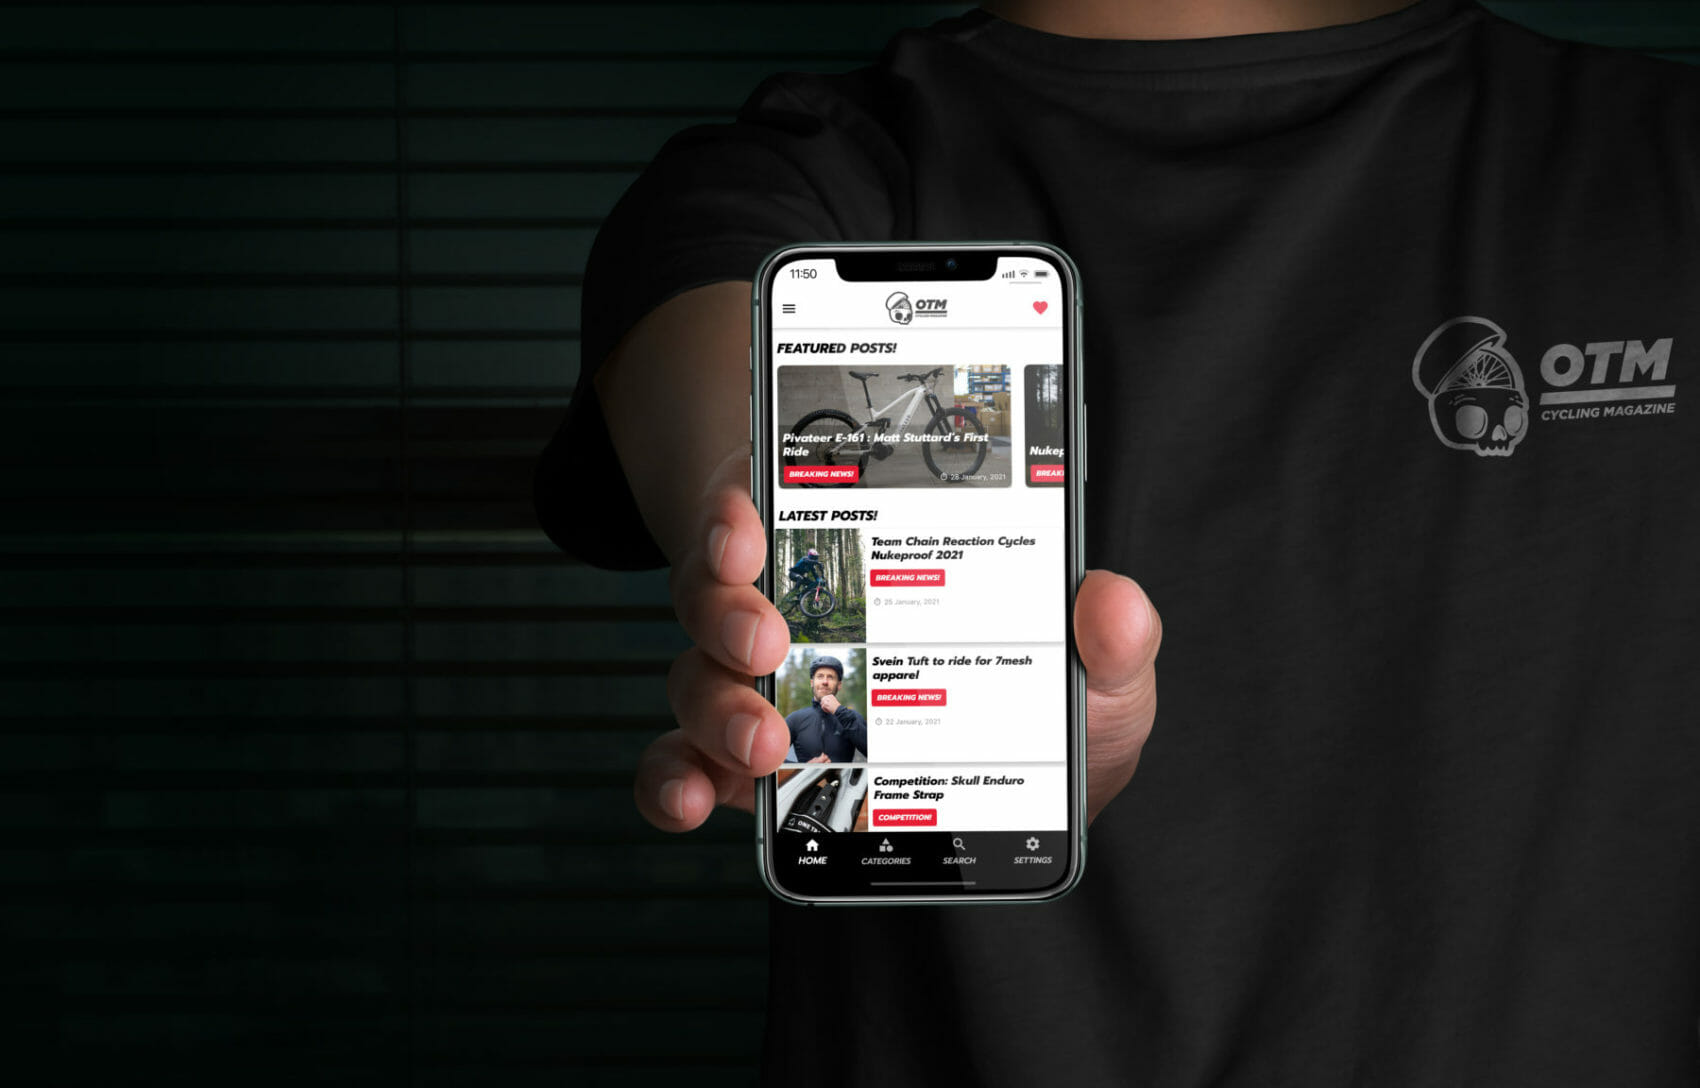 Introducing One Track Mind Mag Mobile Apps!